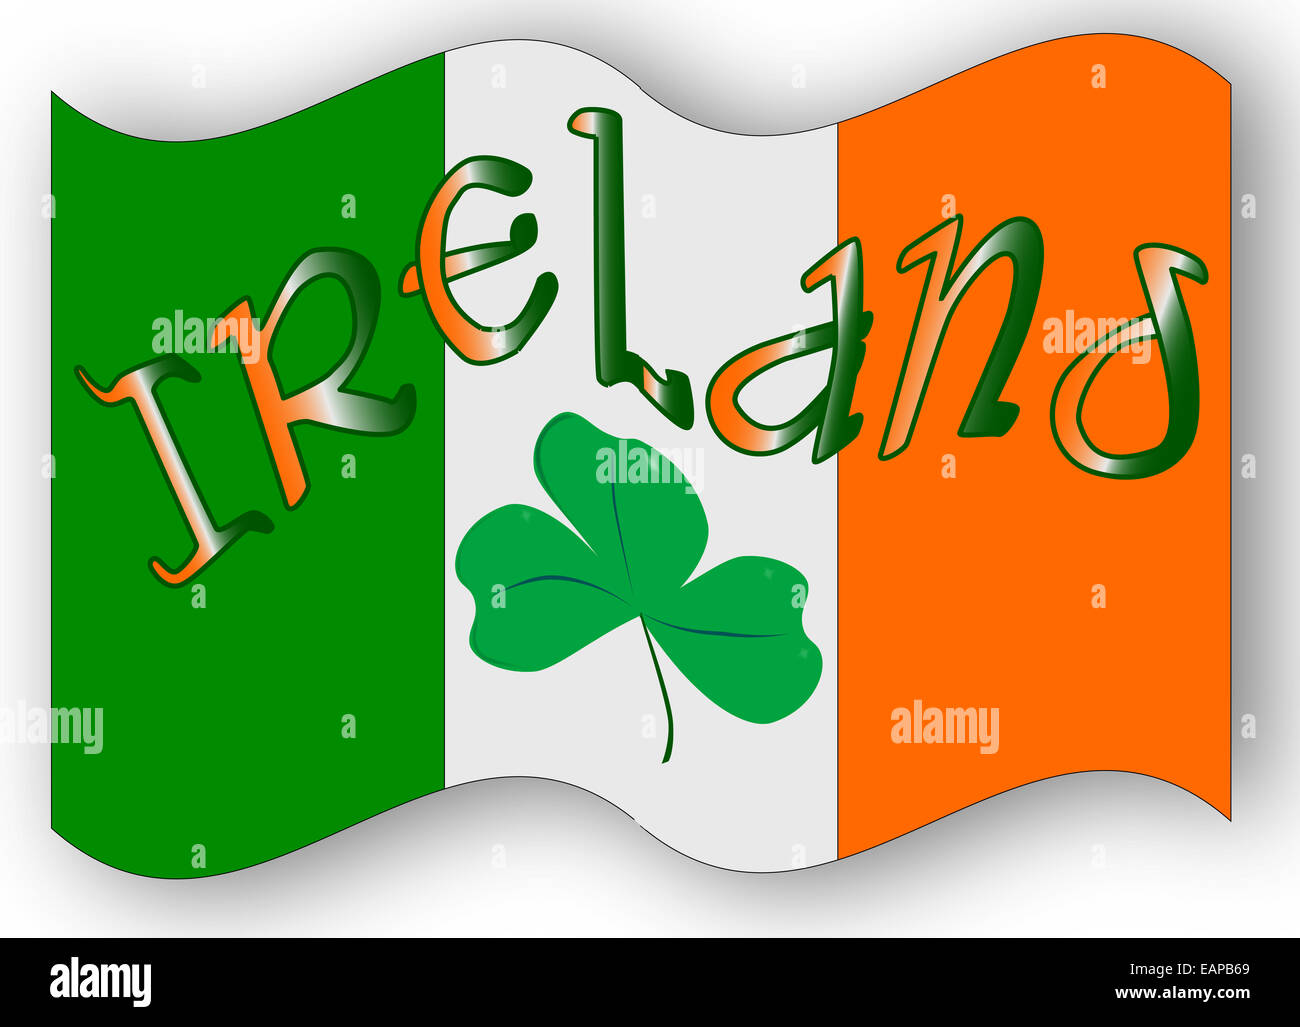 the republic of ireland flag with the text ireland and a lucky